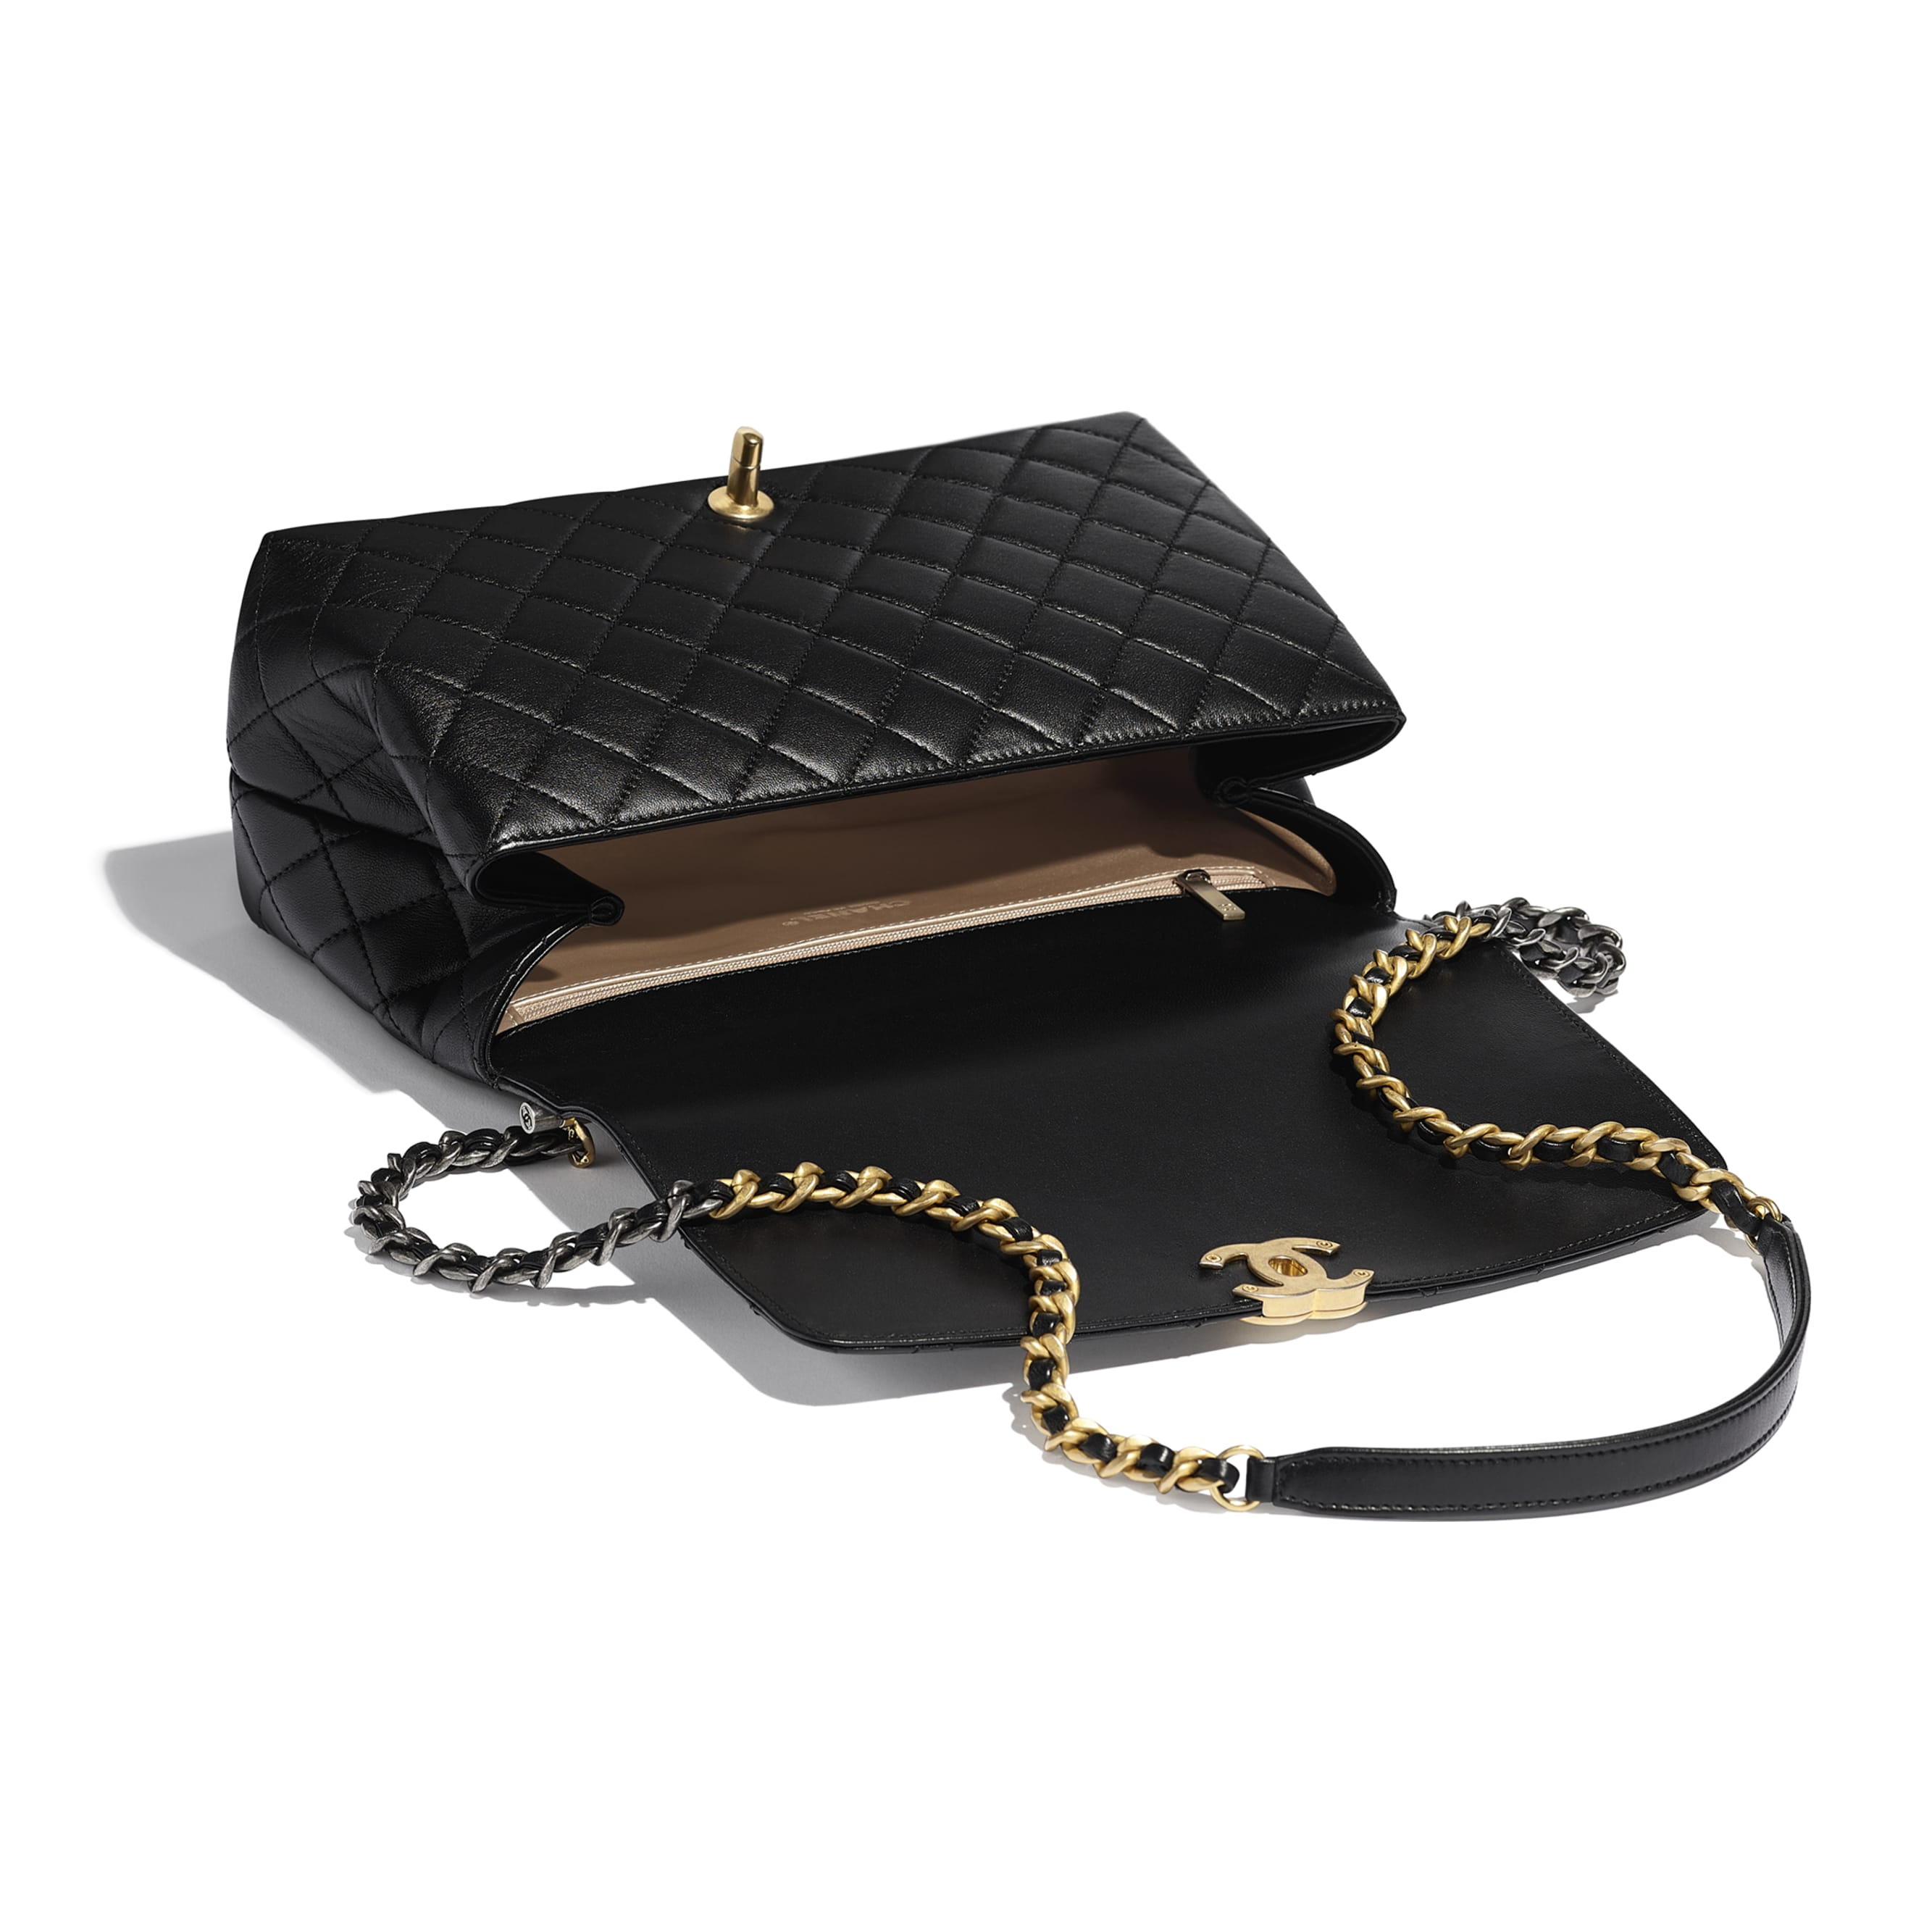 Large Flap Bag With Top Handle - Black - Lambskin, Gold-Tone & Ruthenium-Finish Metal - CHANEL - Other view - see standard sized version